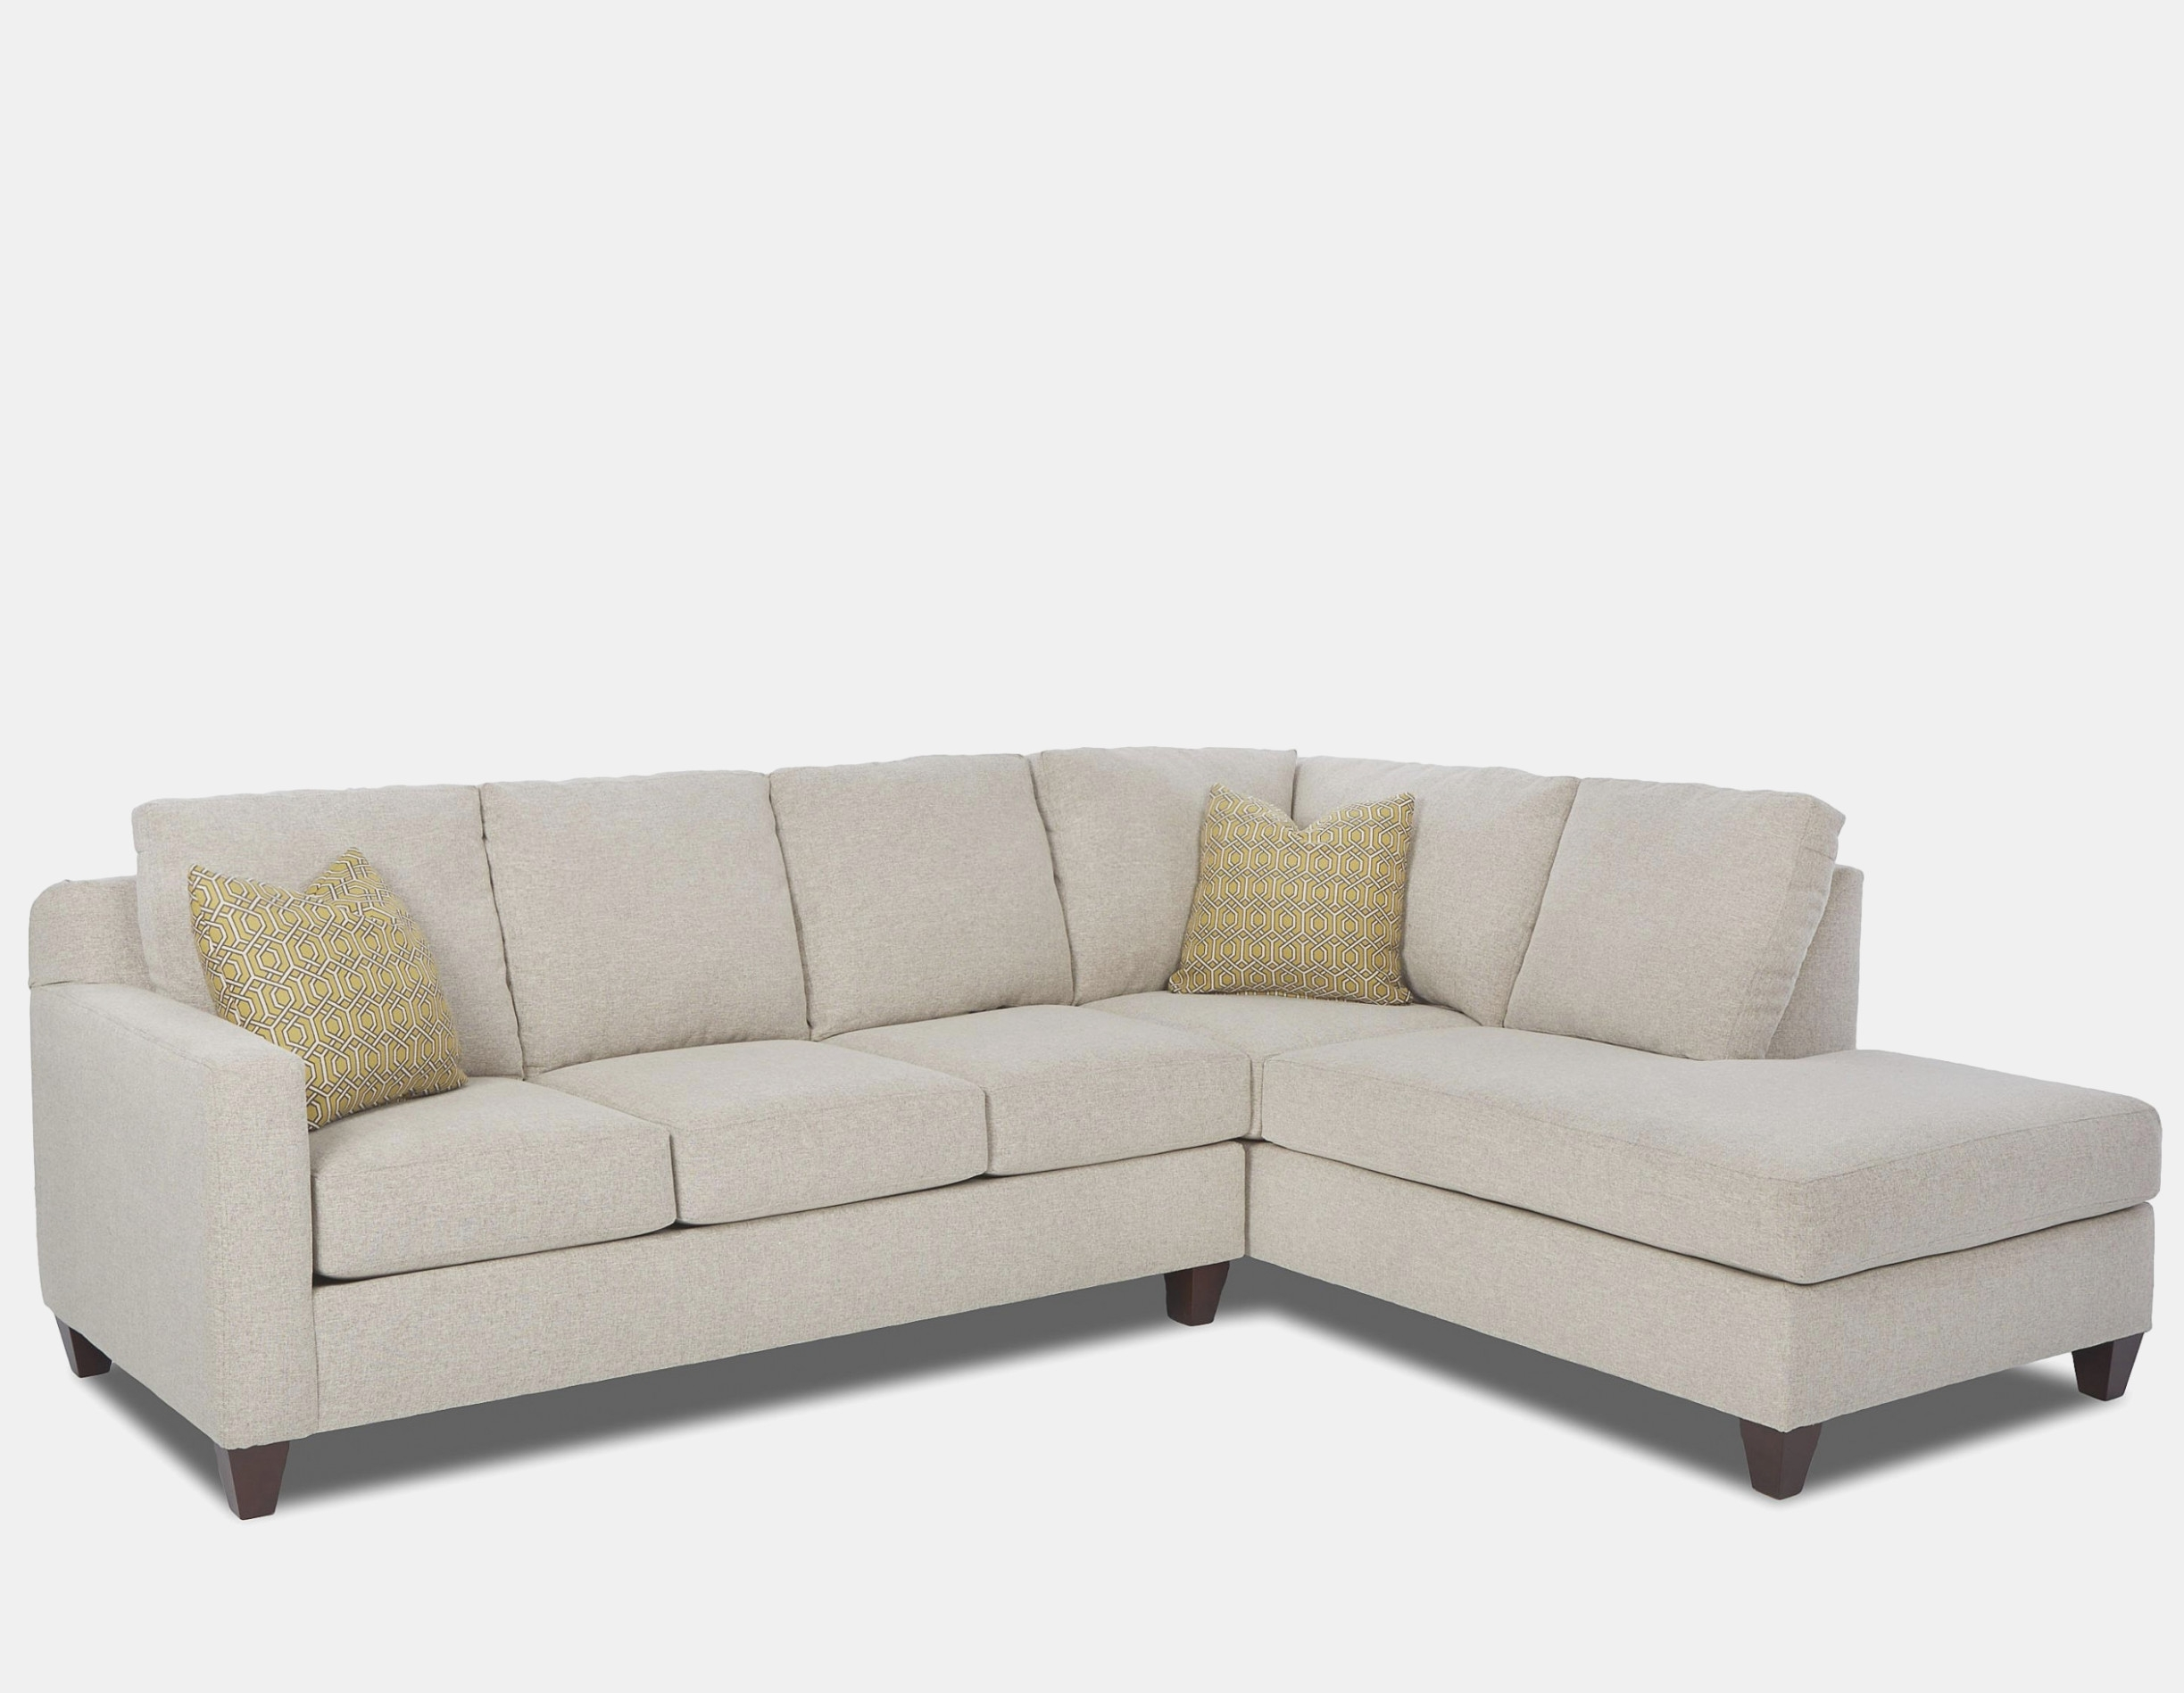 Contemporary 39 Piece Sectional With Right Arm Facing Sofa Chaise For Jobs Oat 2 Piece Sectionals With Left Facing Chaise (Image 6 of 25)